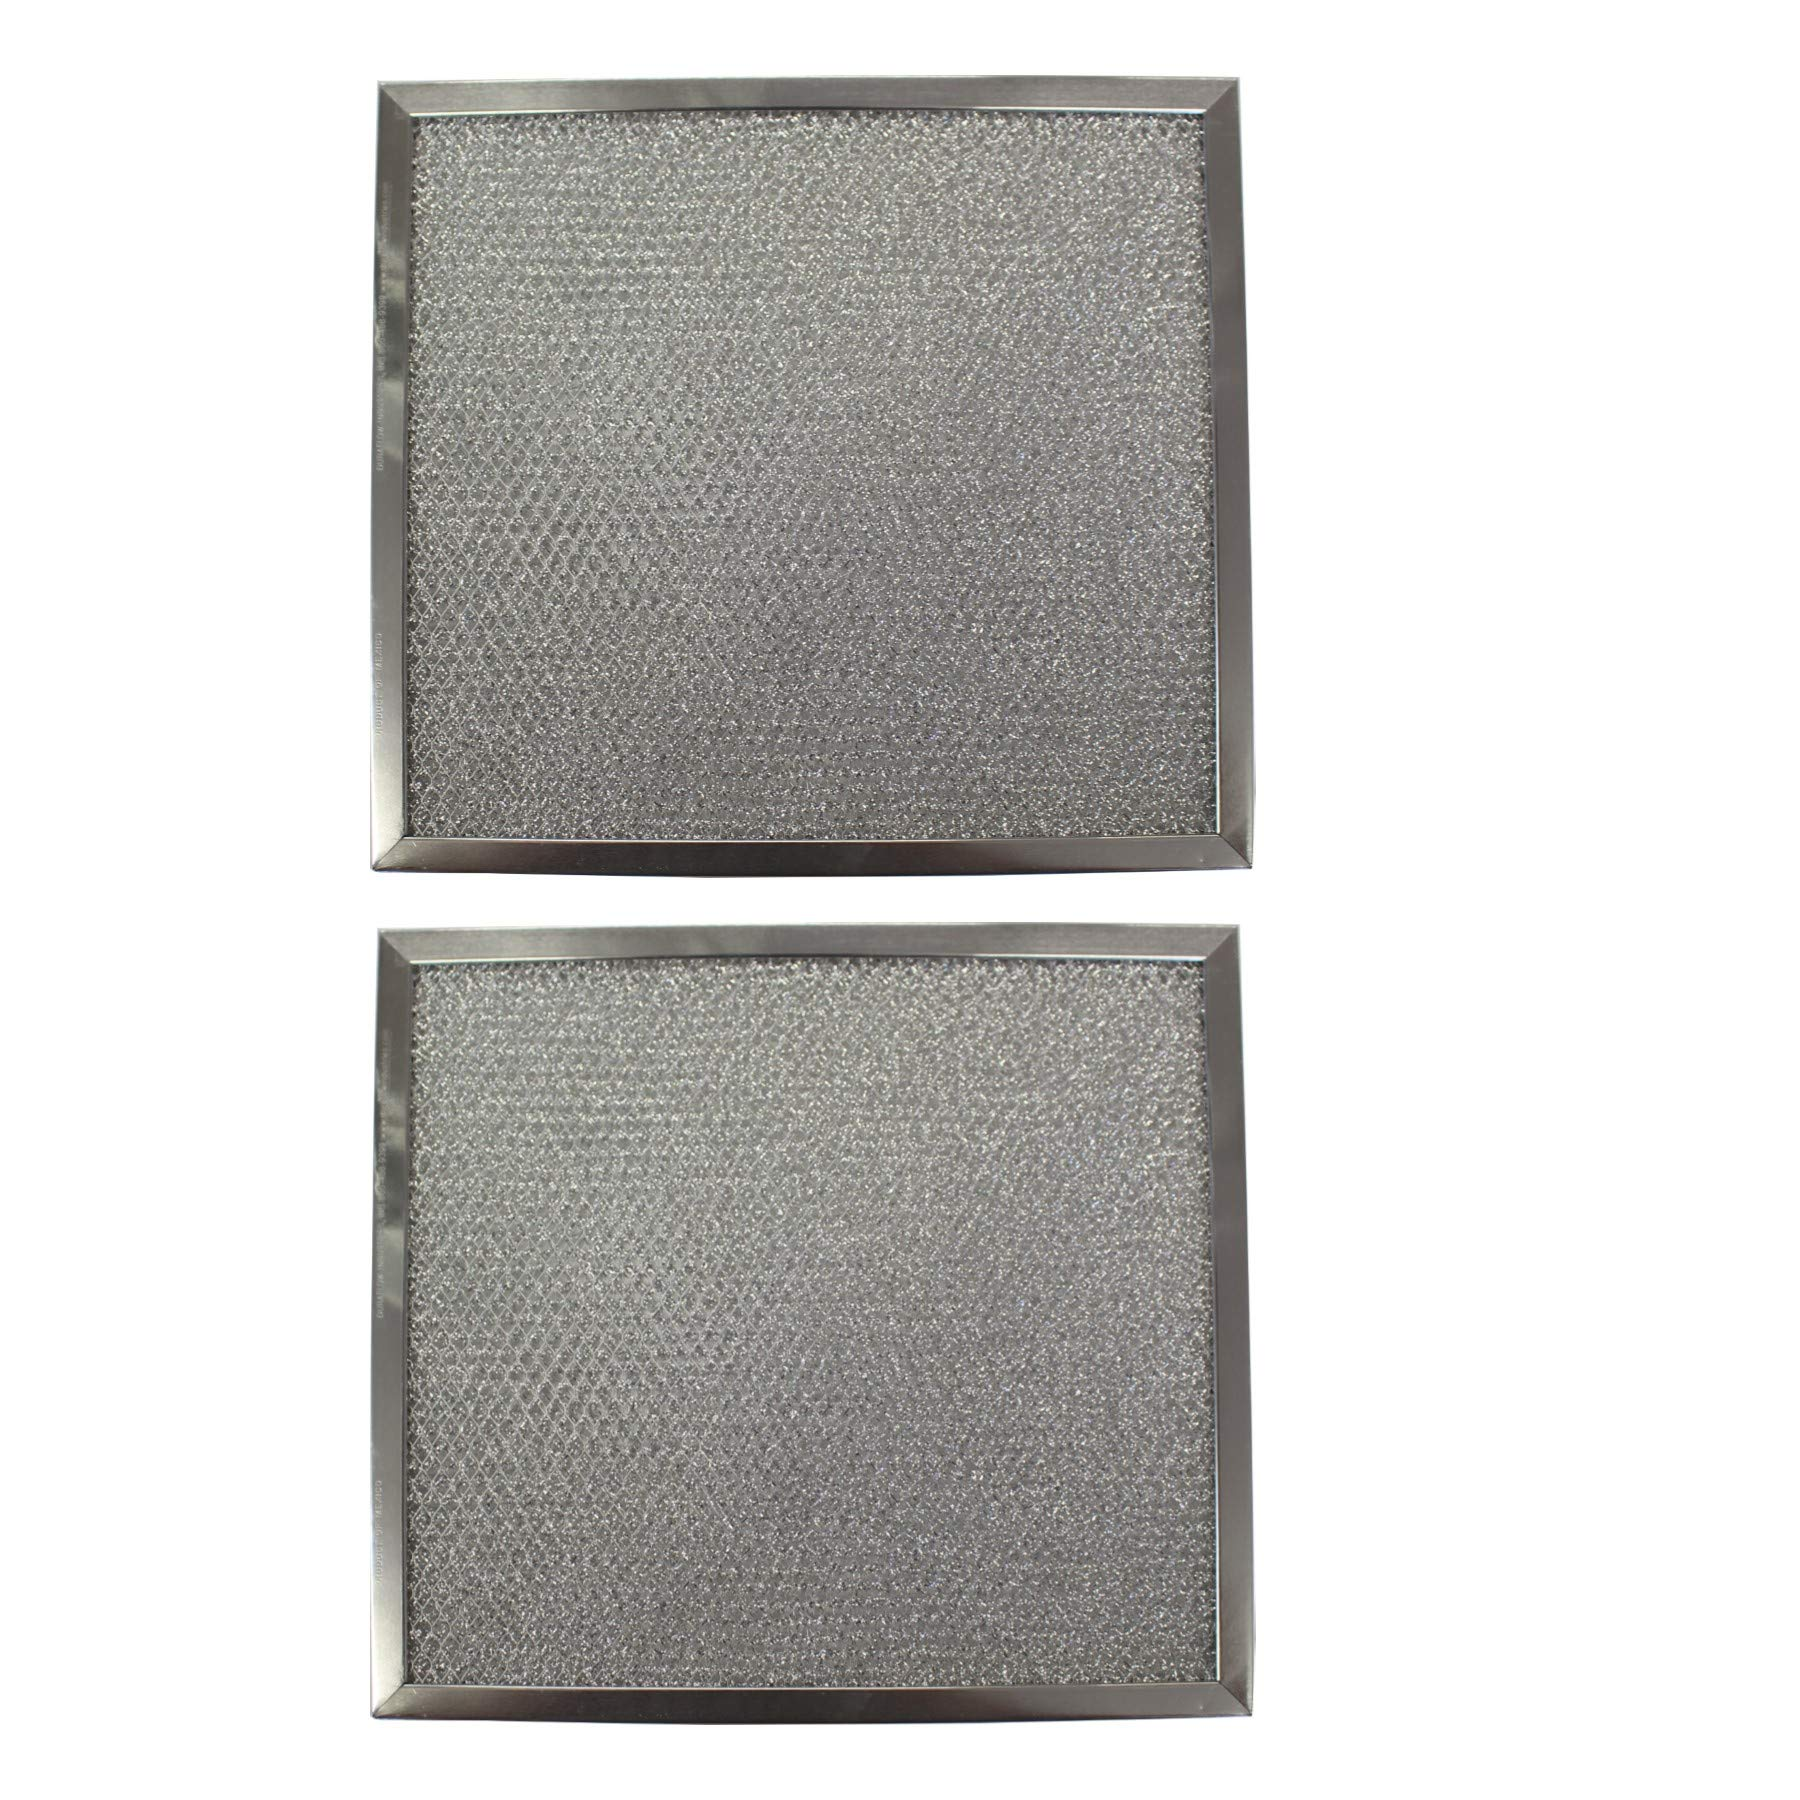 Replacement Aluminum Filters Compatible with Aubrey 99010215,G 8676,RHF0907  9 1/2 X 11 1/8 X 3/8 (2